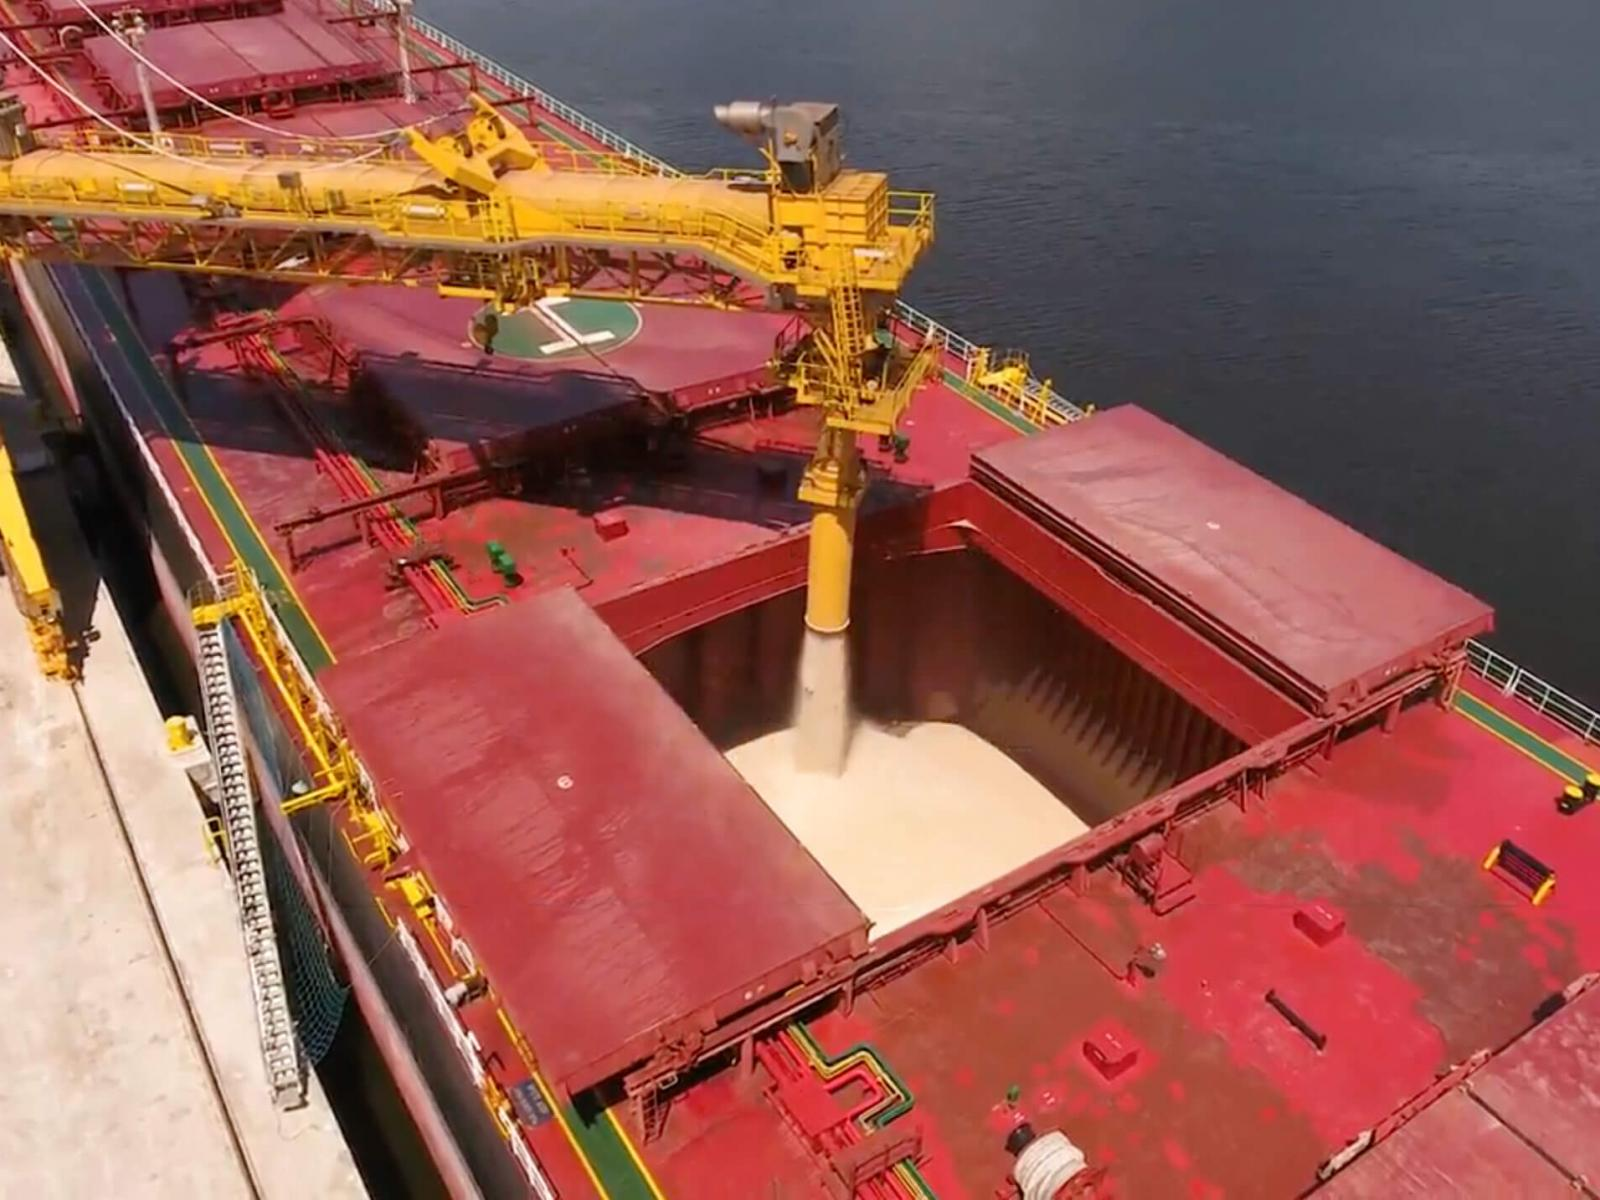 Tanker ship being loaded with sand-colored raw material at portside